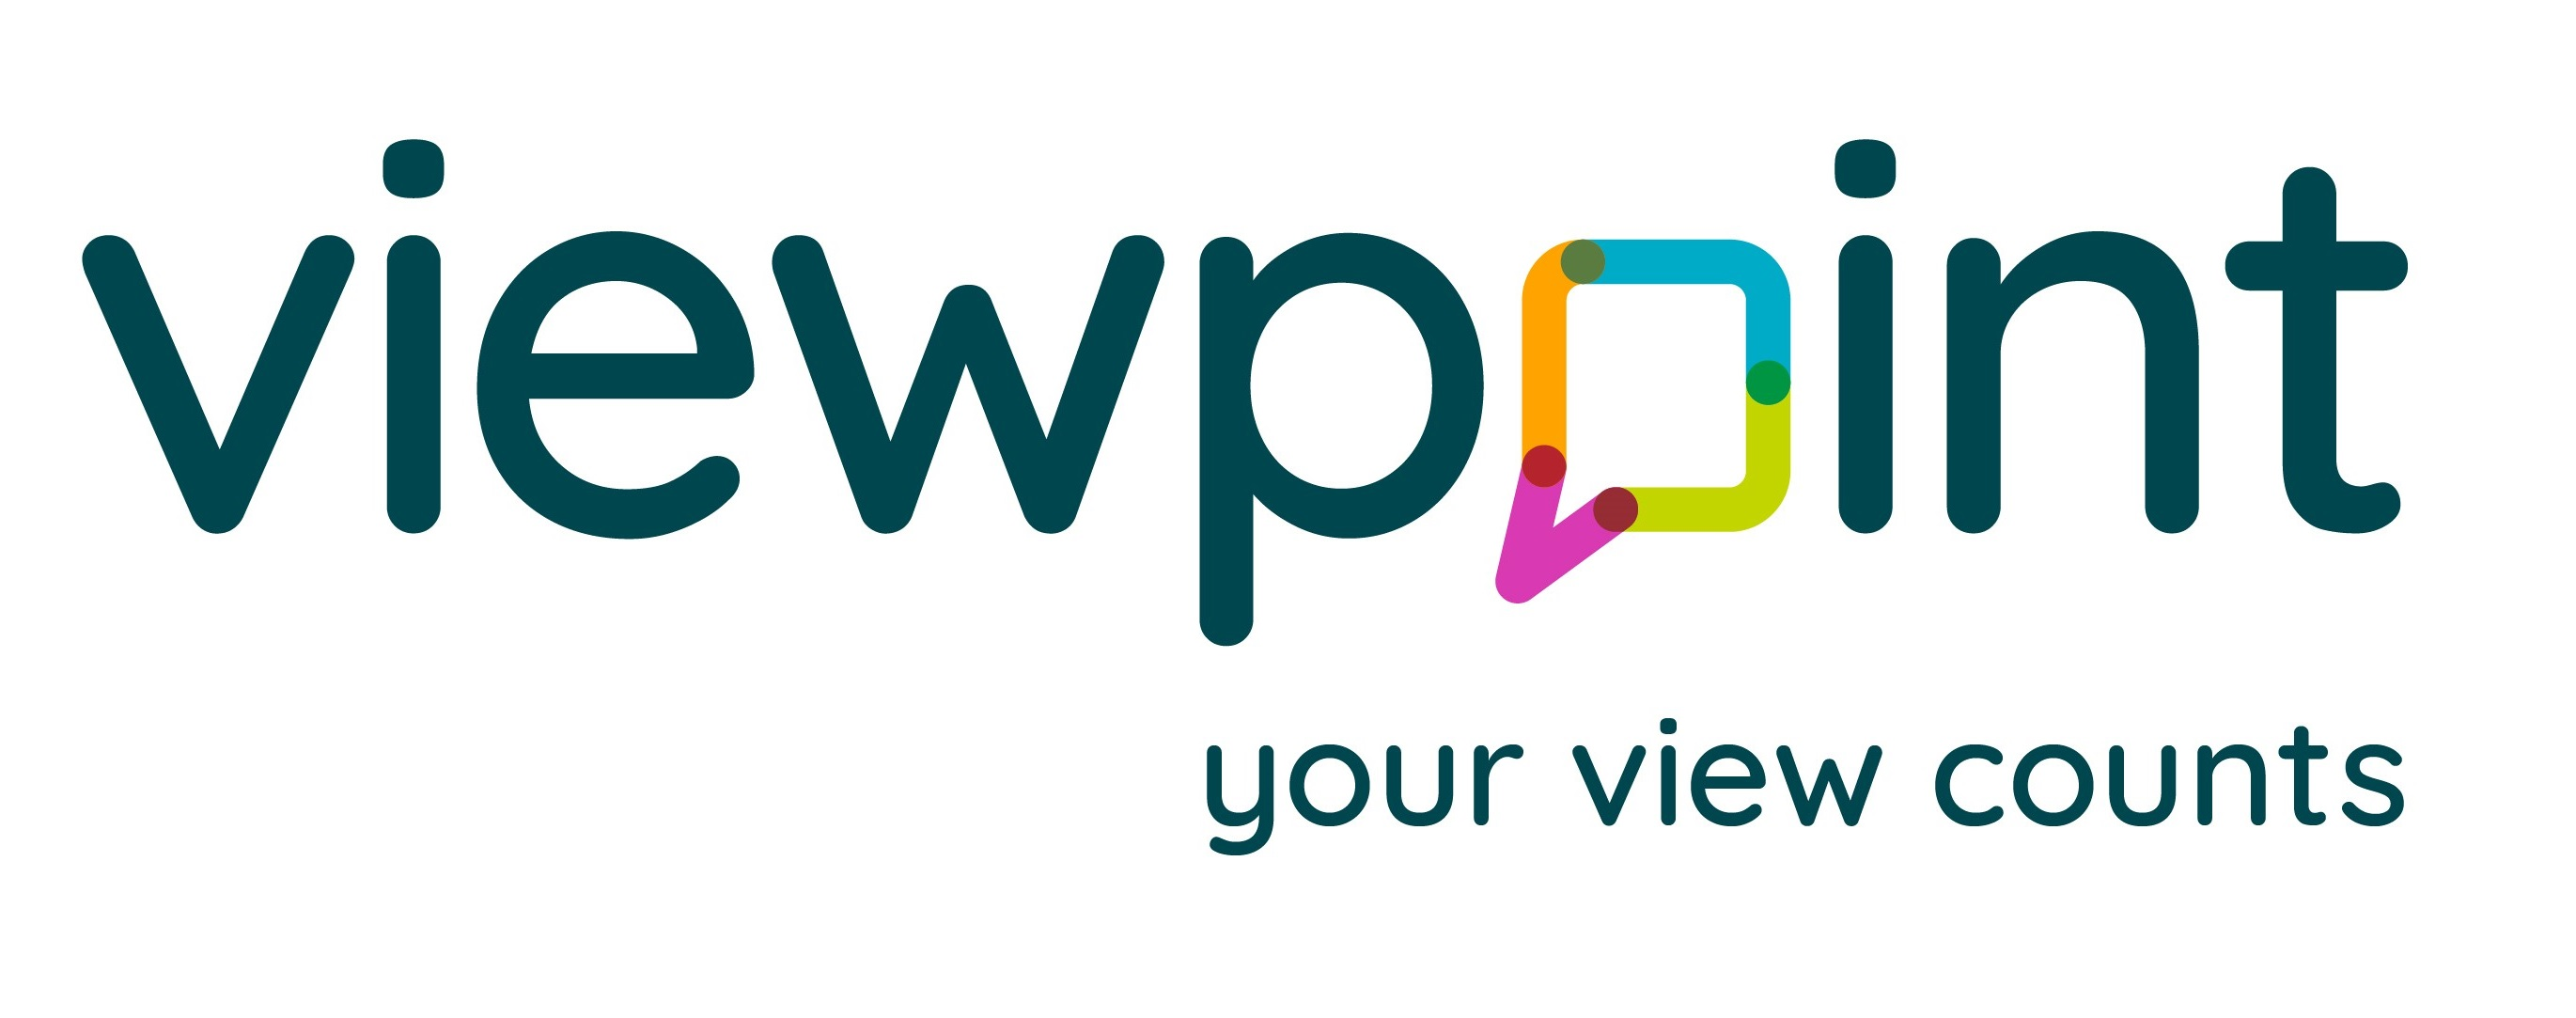 Viewpoint logo your view counts